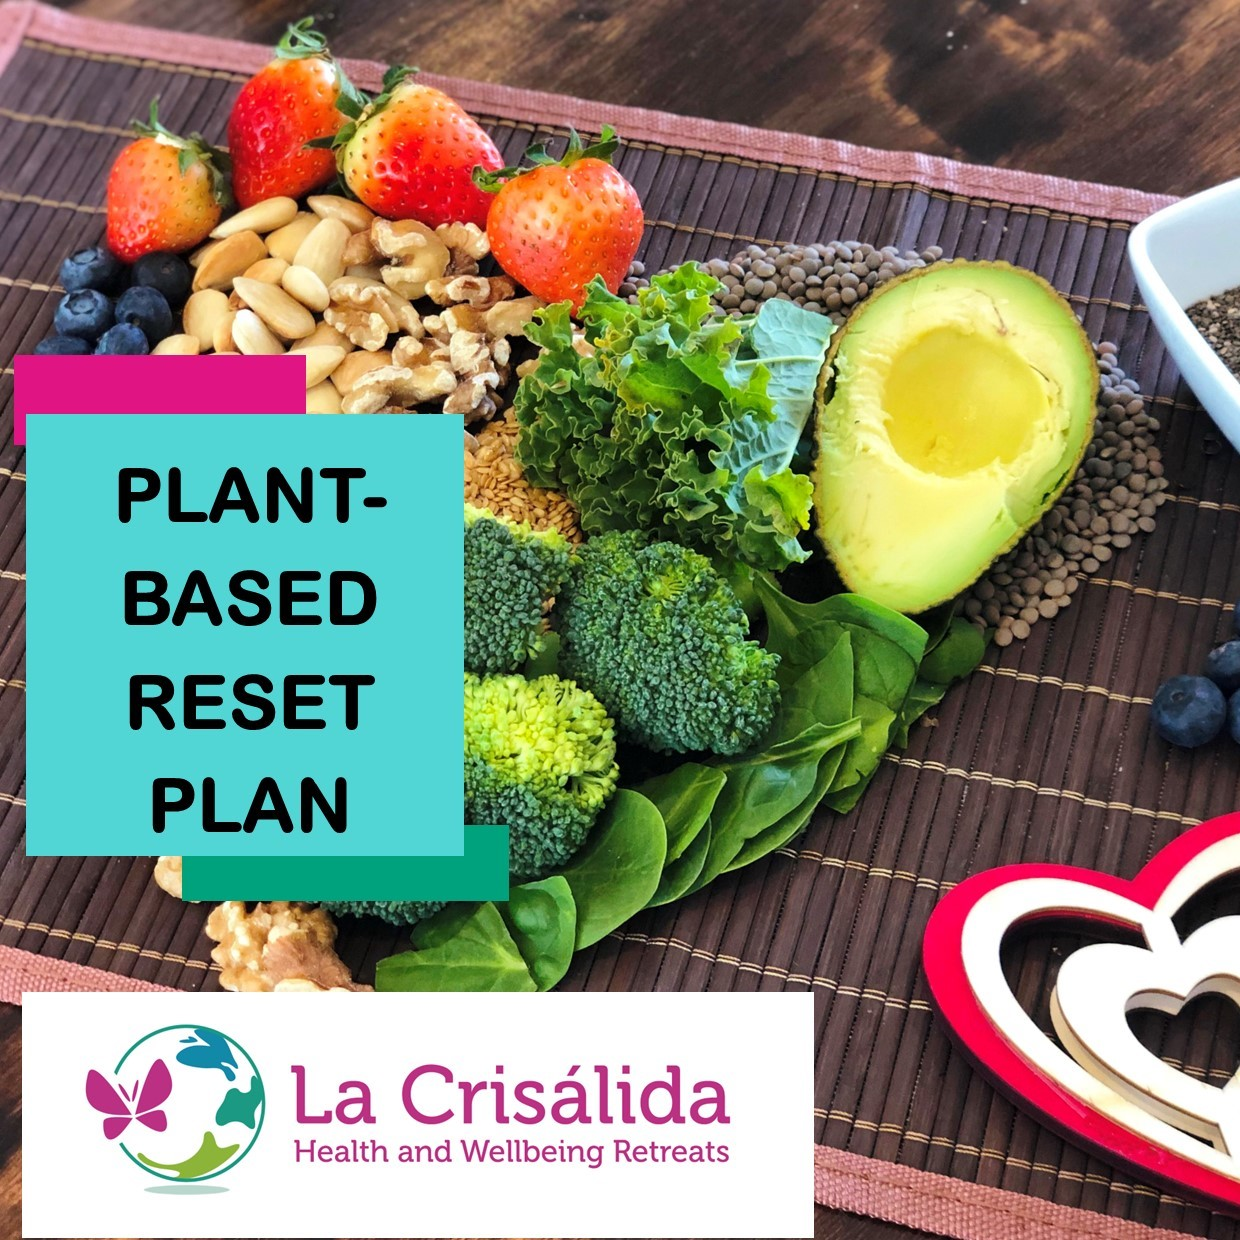 Plant-based Reset Plan La Crisalida Retreats health and wellbeing detox plan